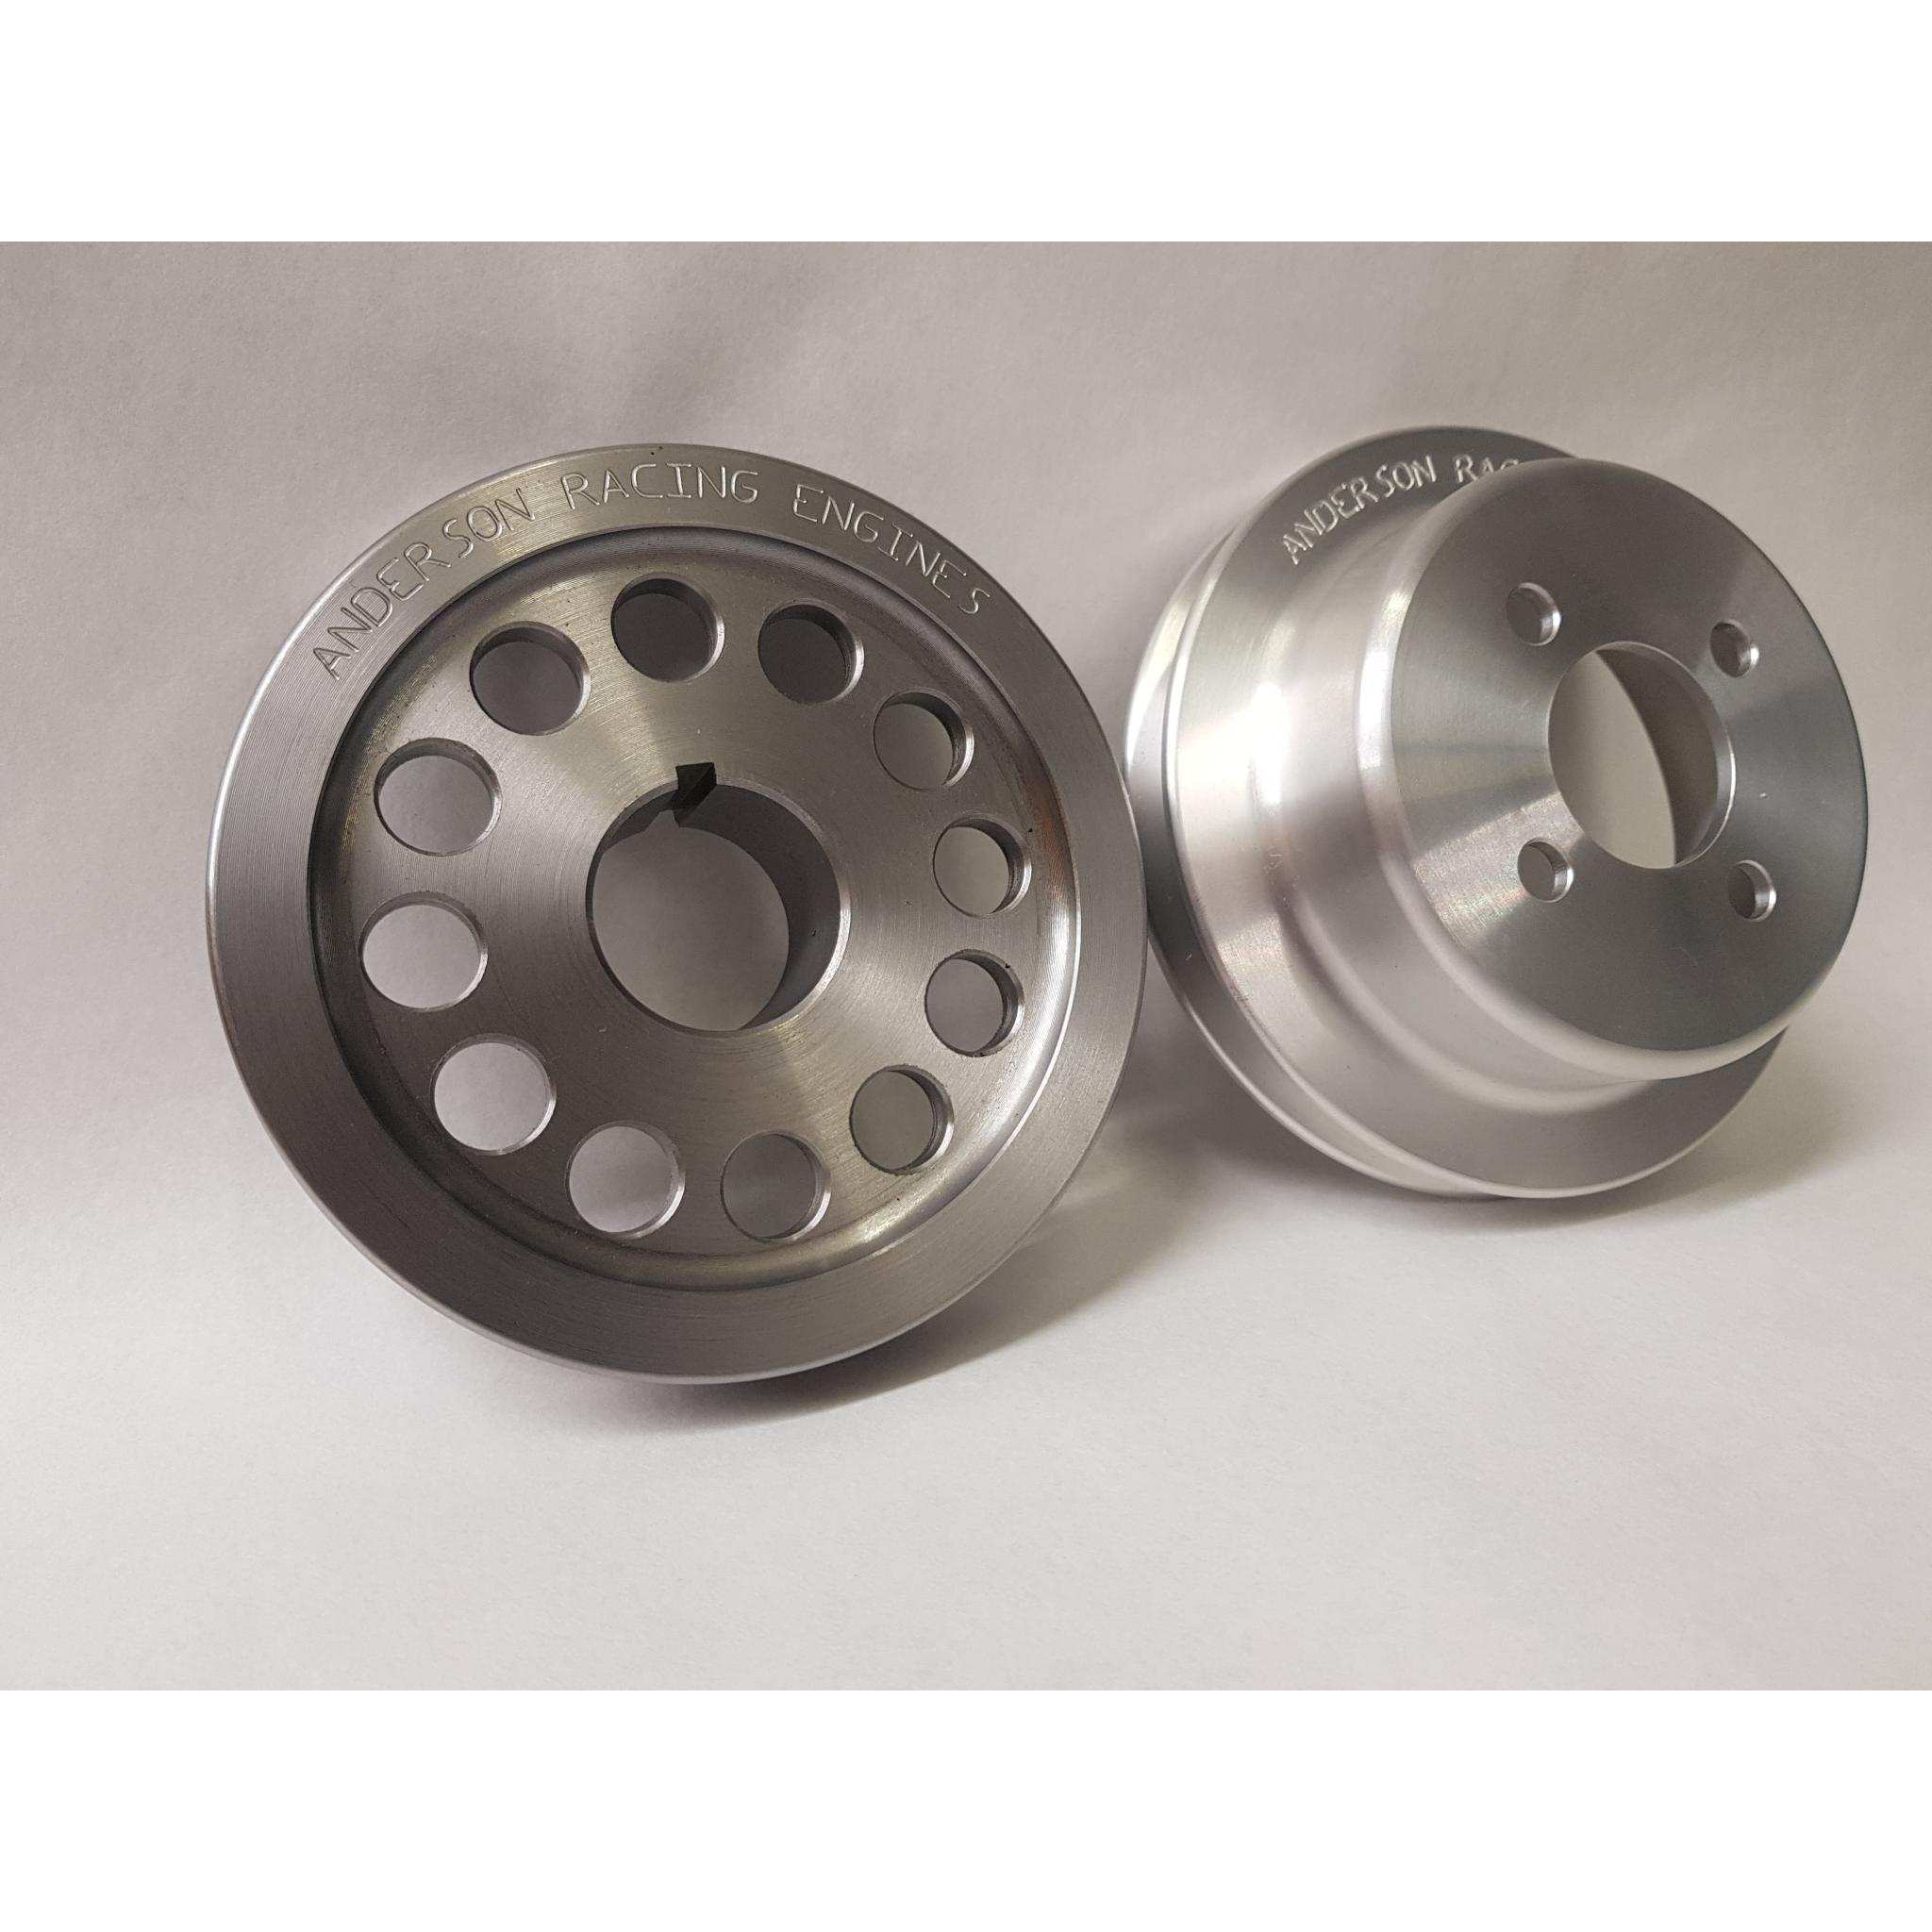 FORD PINTO ALLOY WATER PUMP AND STEEL CRANK PULLEY